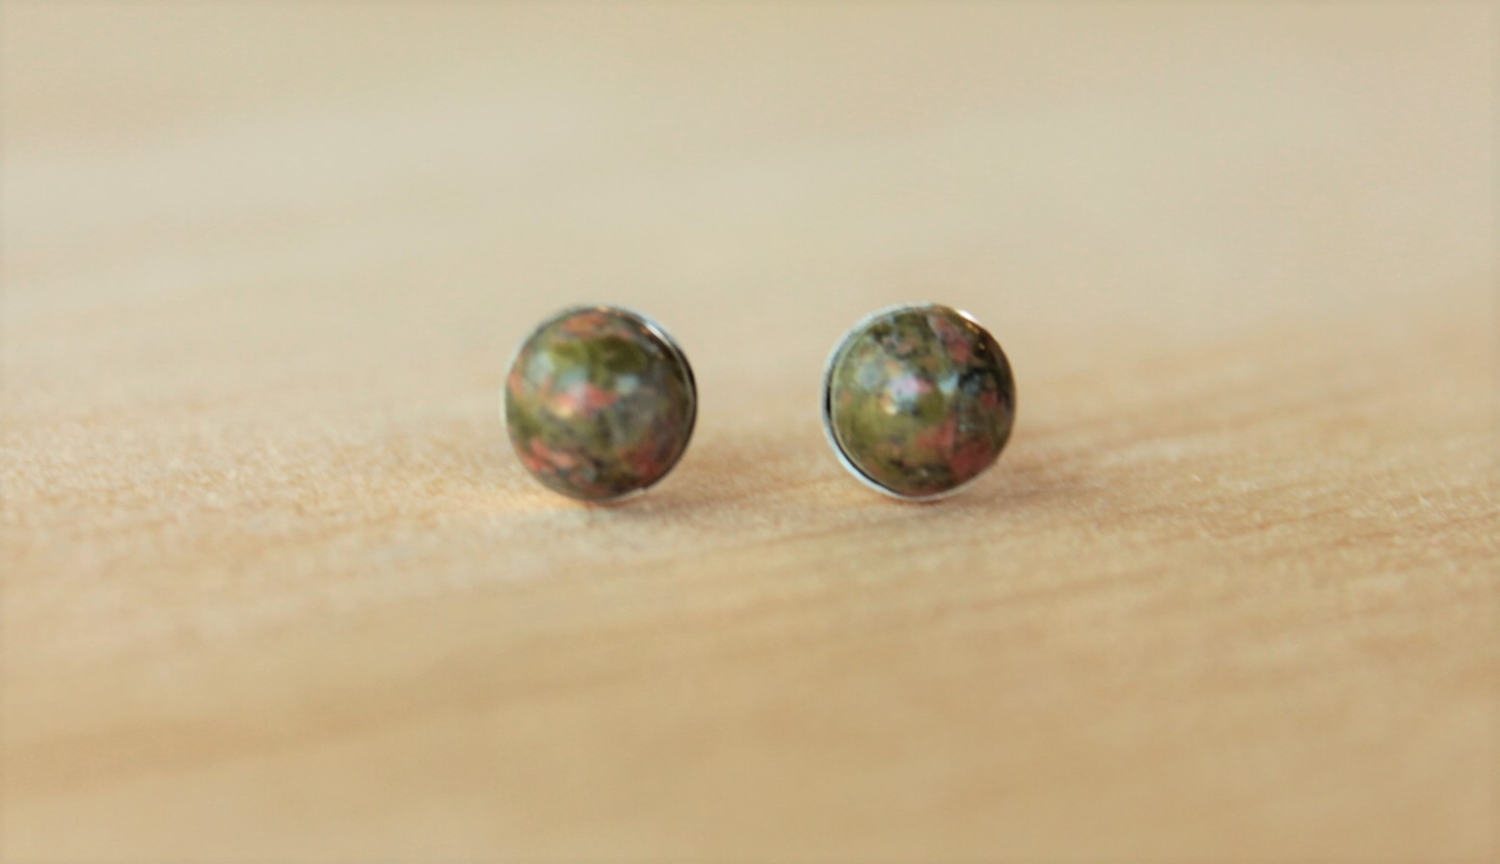 Unakite Gemstone Bezels (Niobium or Titanium Post Earrings) - Pretty Sensitive Ears